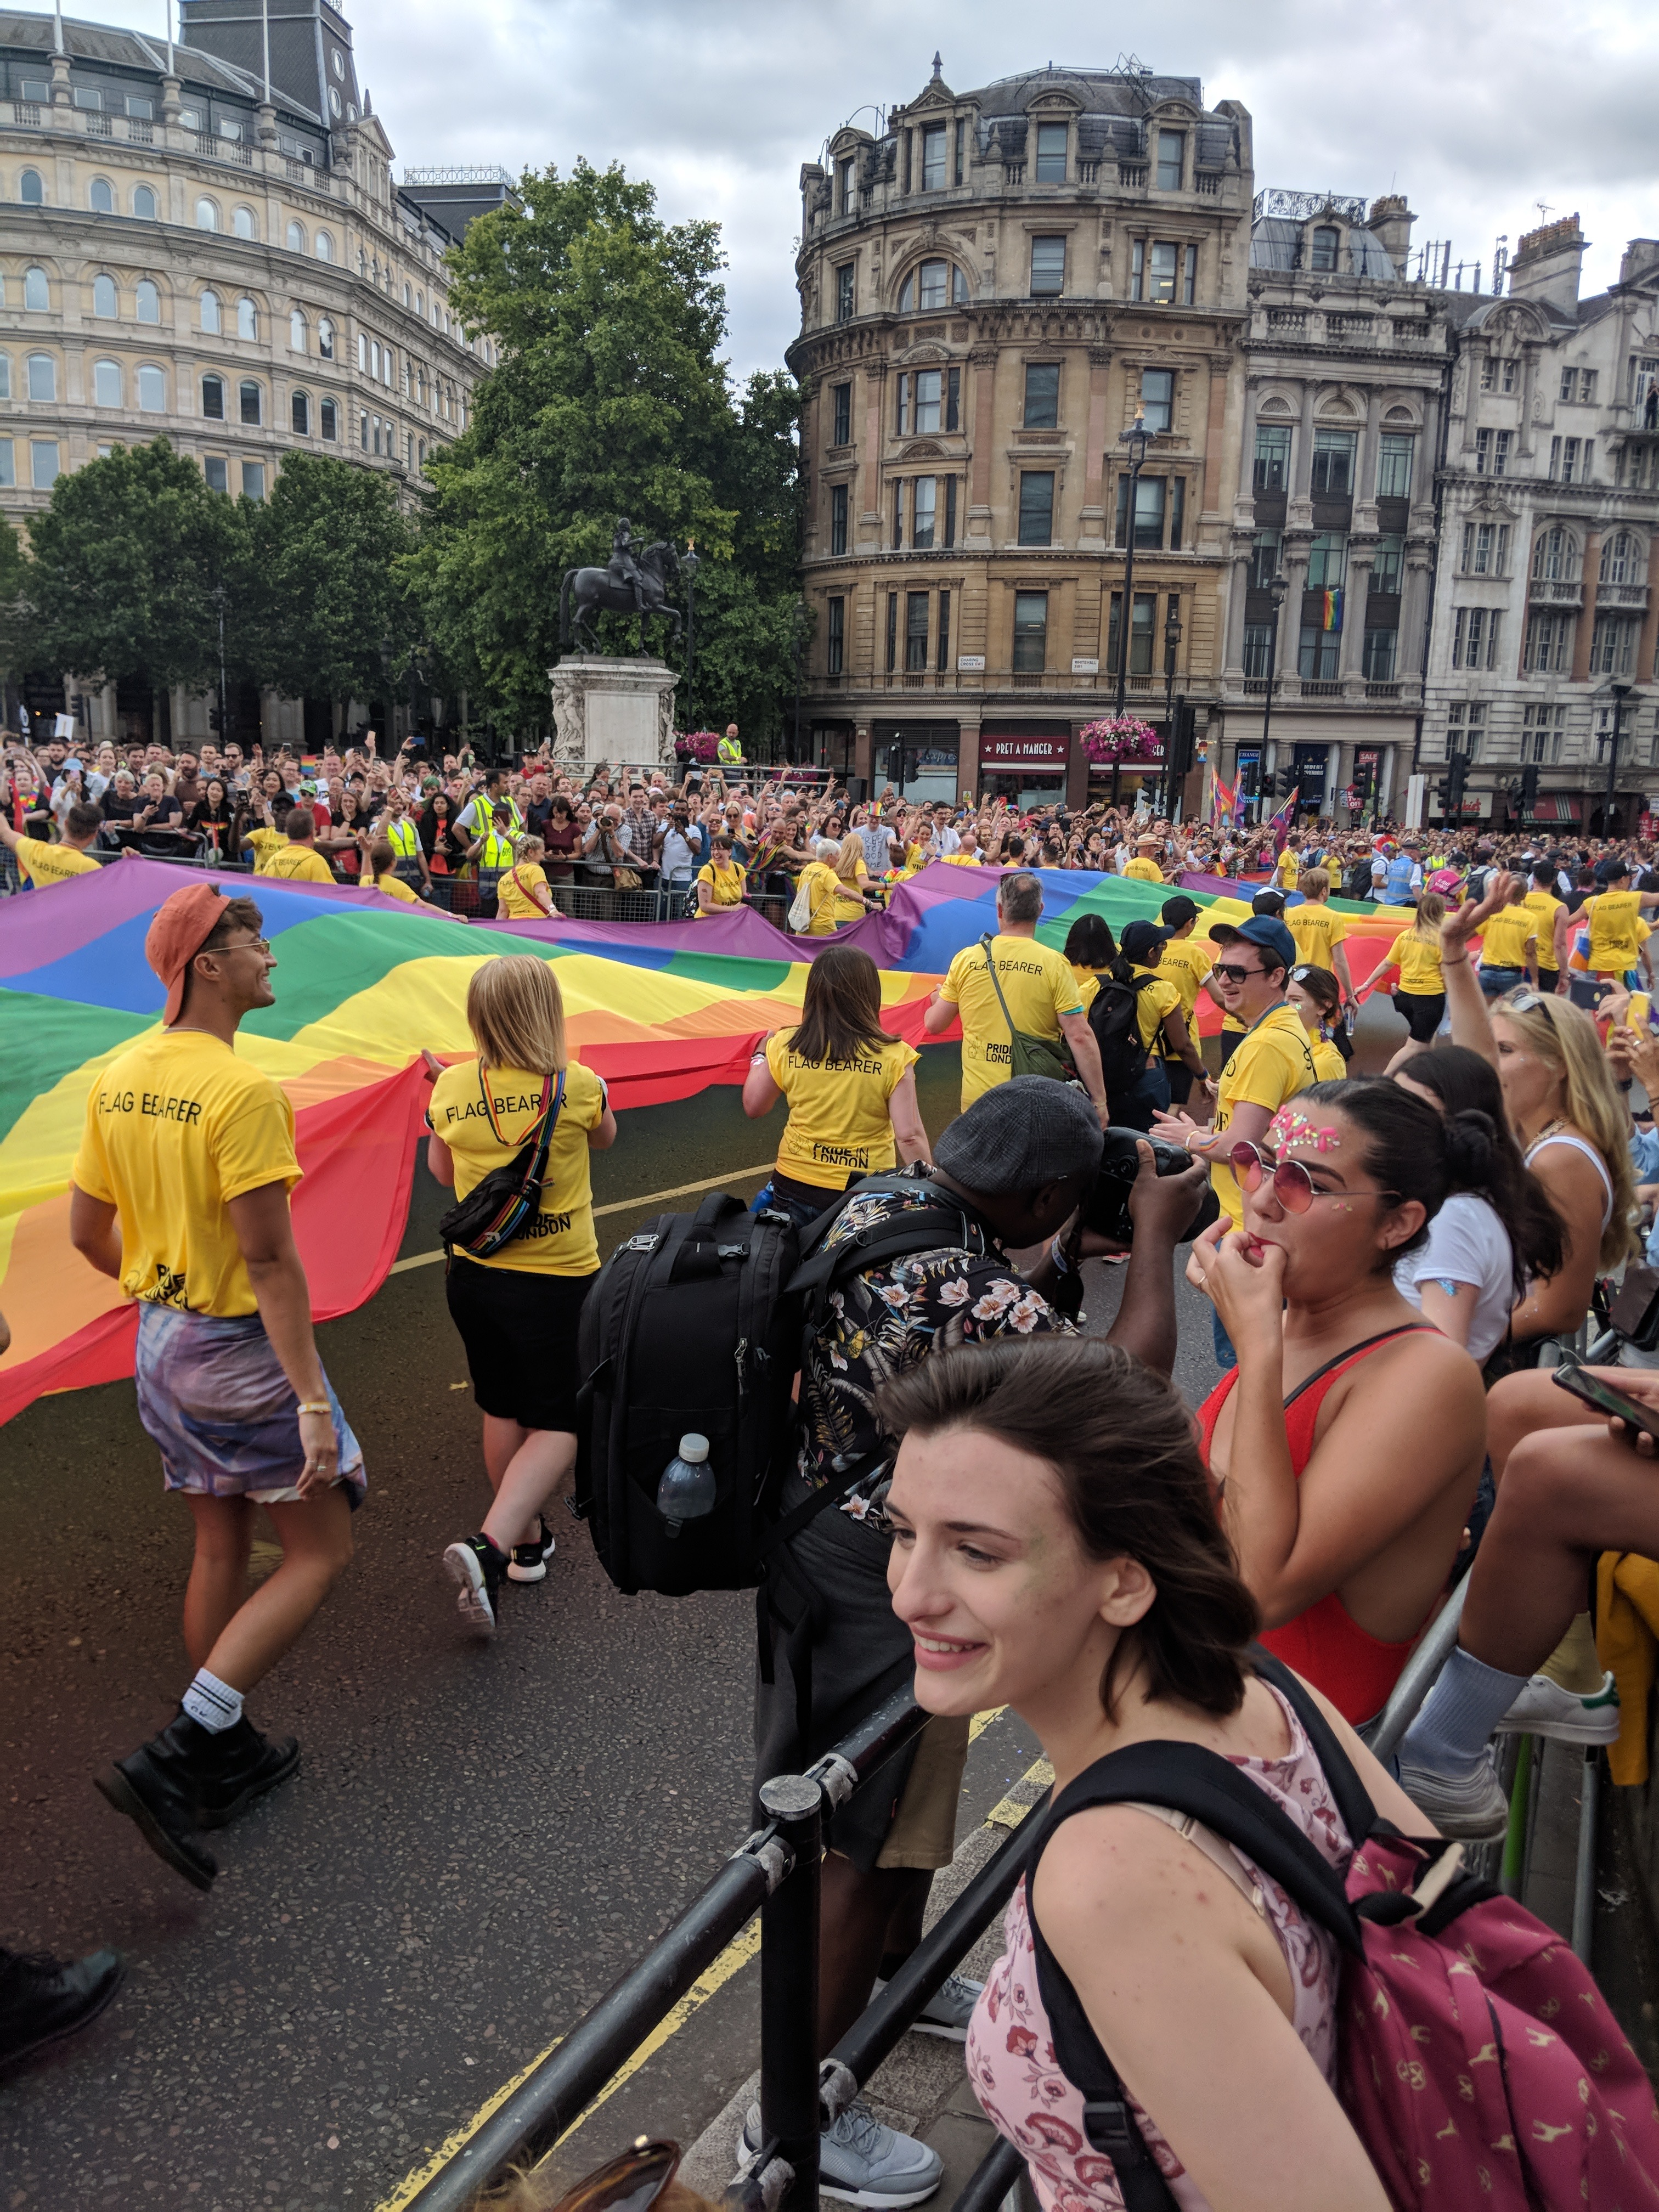 People crowd either side of the street, including me, who is pictured watching the procession right at the edge of the street. Proceeding down the street are people in yellow shirts all holding onto a rainbow flag. In the background of the crowds of people are some historic looking buildings, and a statue of a man riding a horse